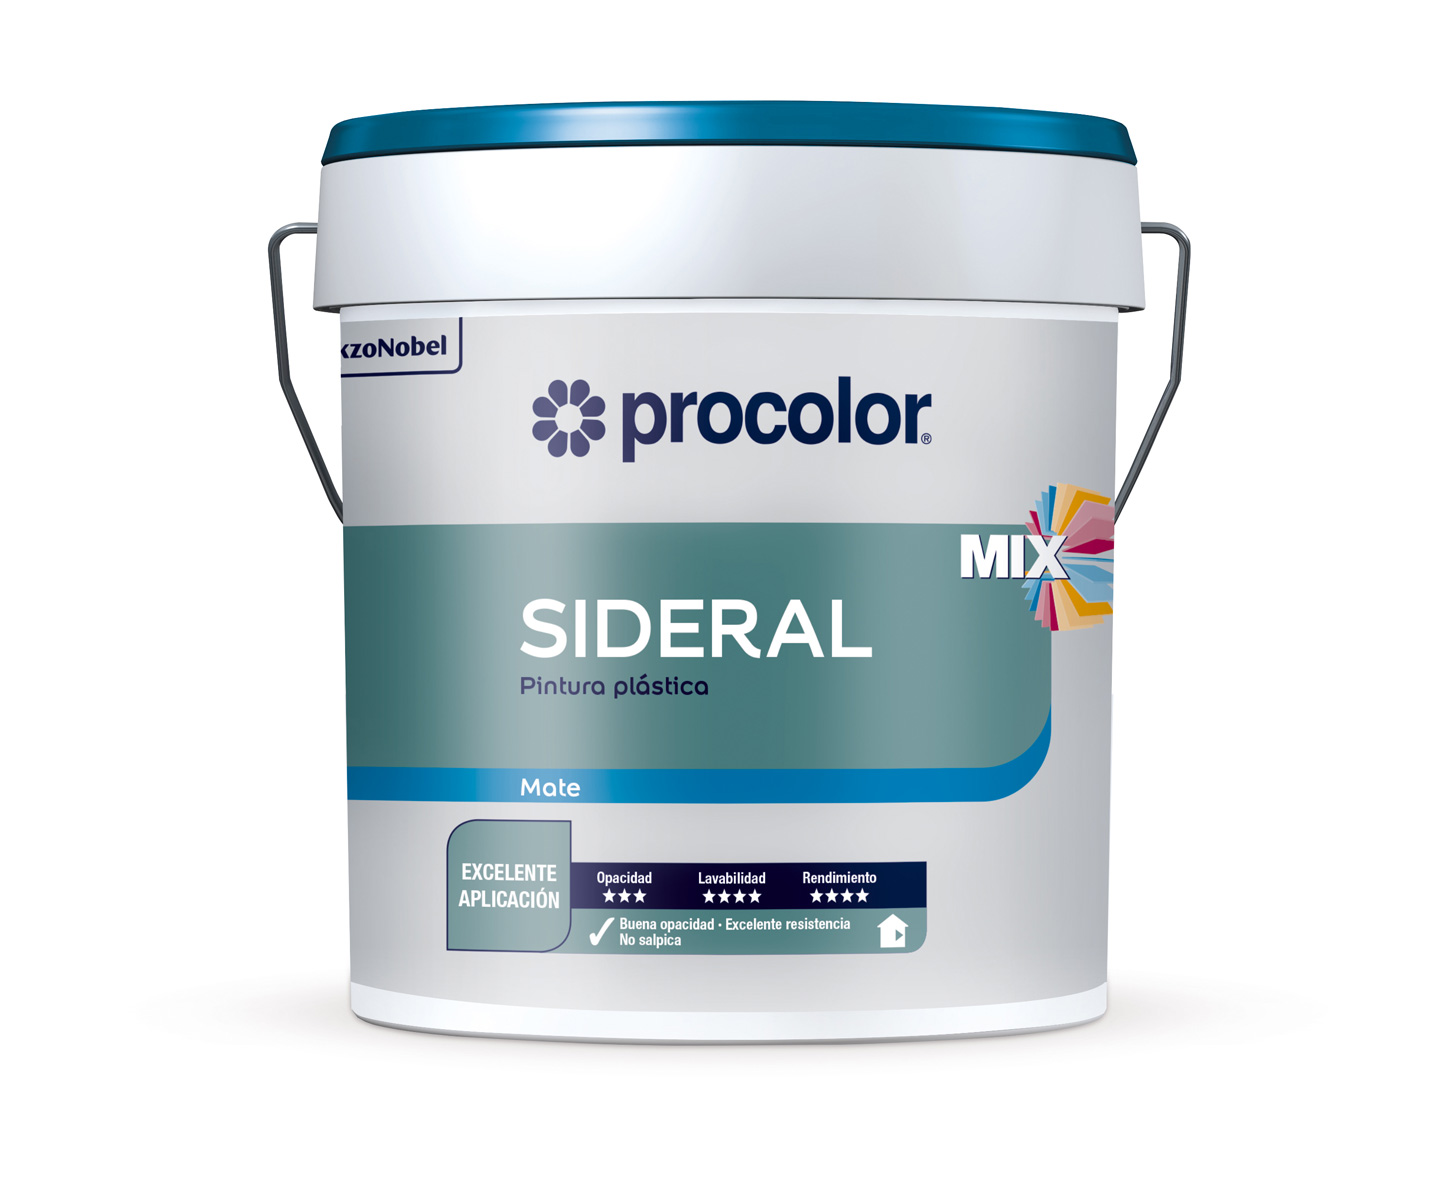 Sideral Mate Mix Image